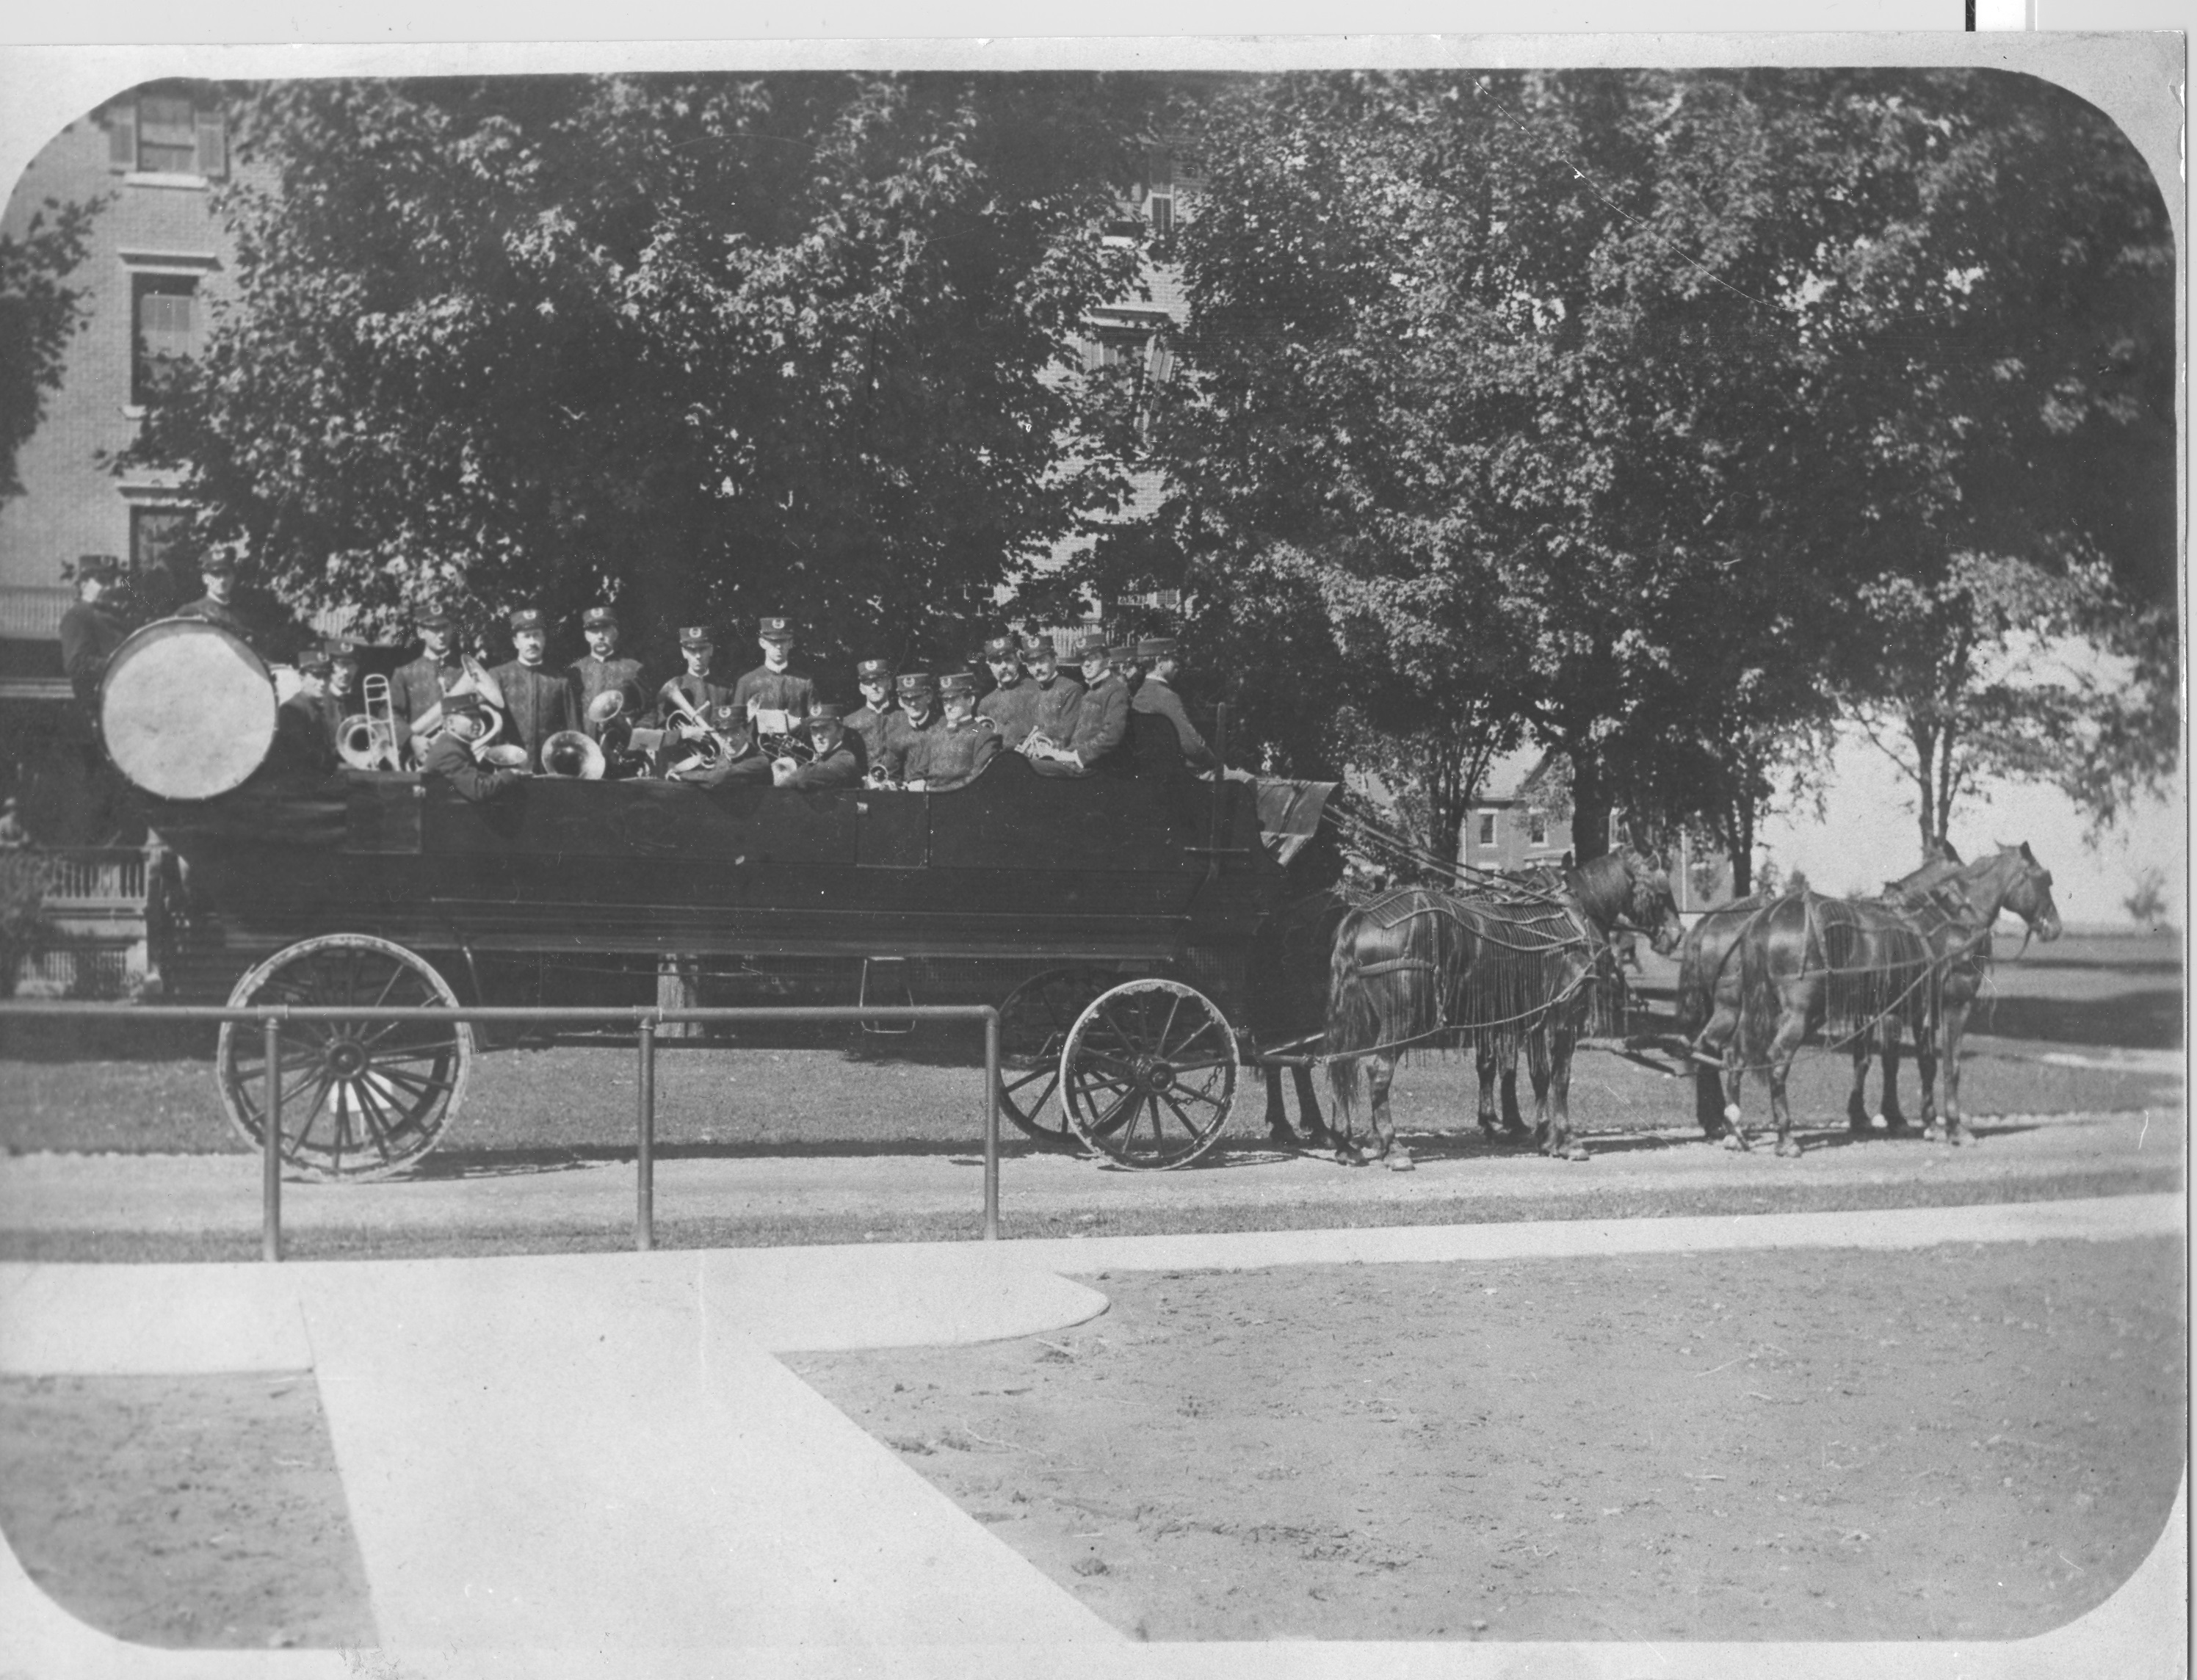 Image of large wooden horse-drawn wagon with musicians in it at Craig Colony